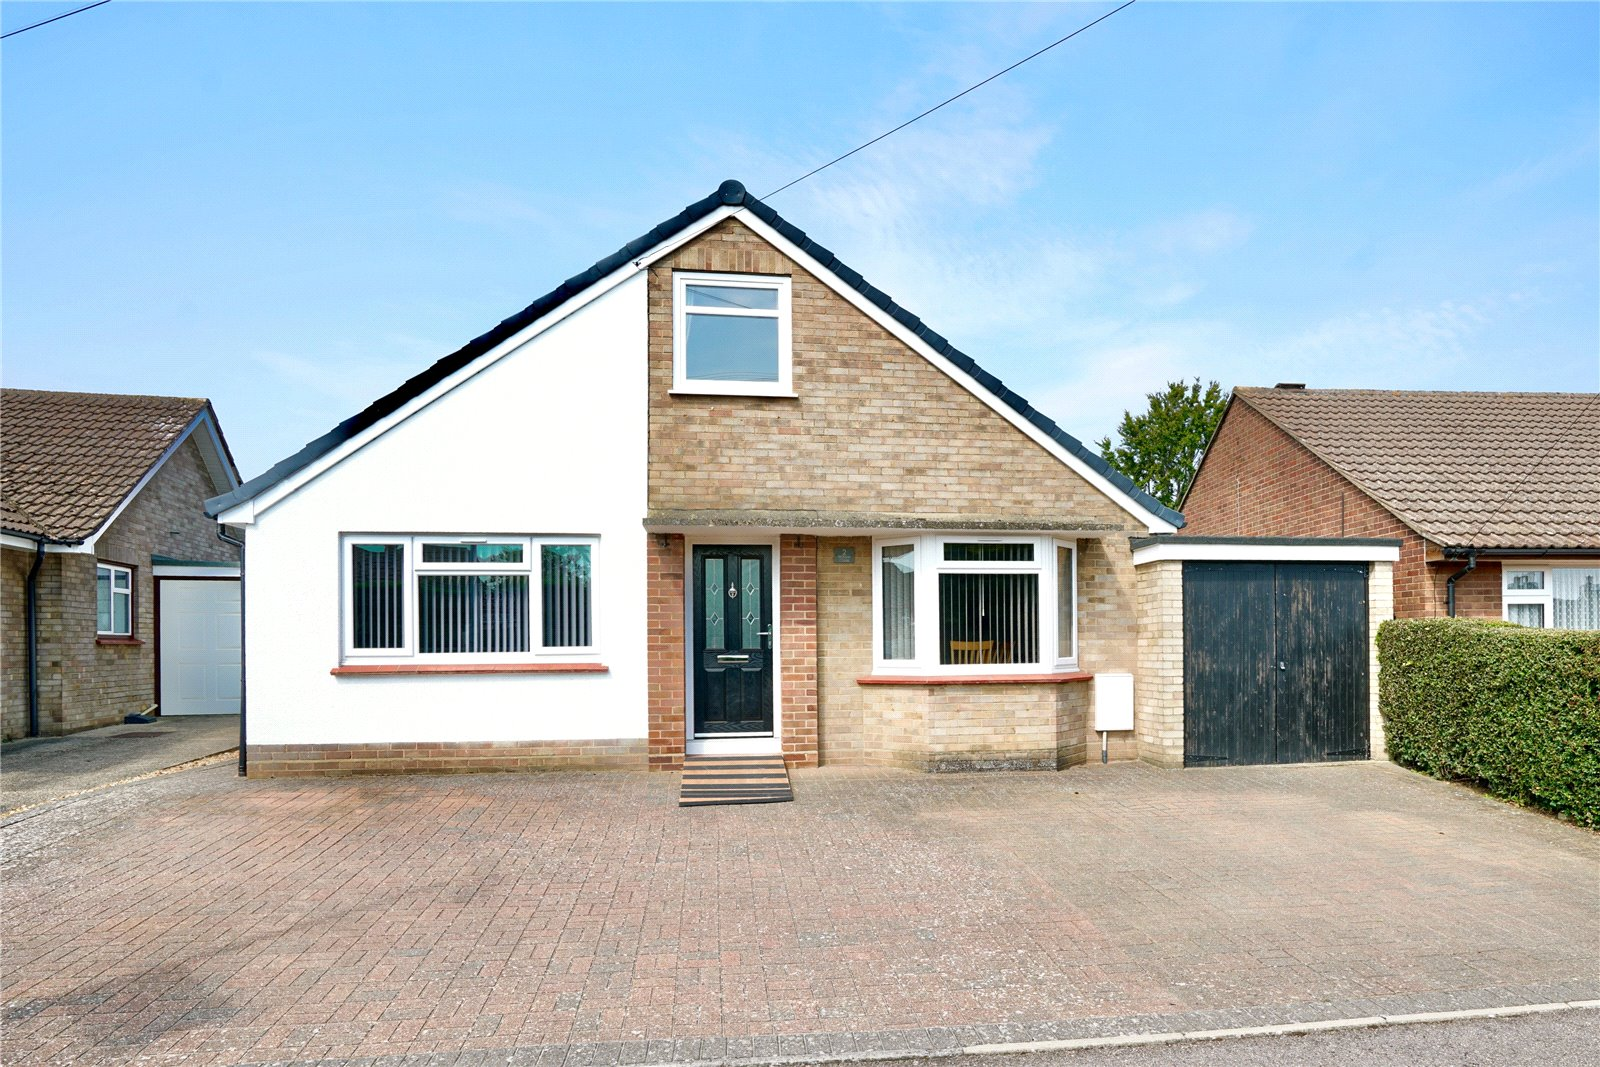 4 bed bungalow for sale in Willow Close, Eynesbury, PE19